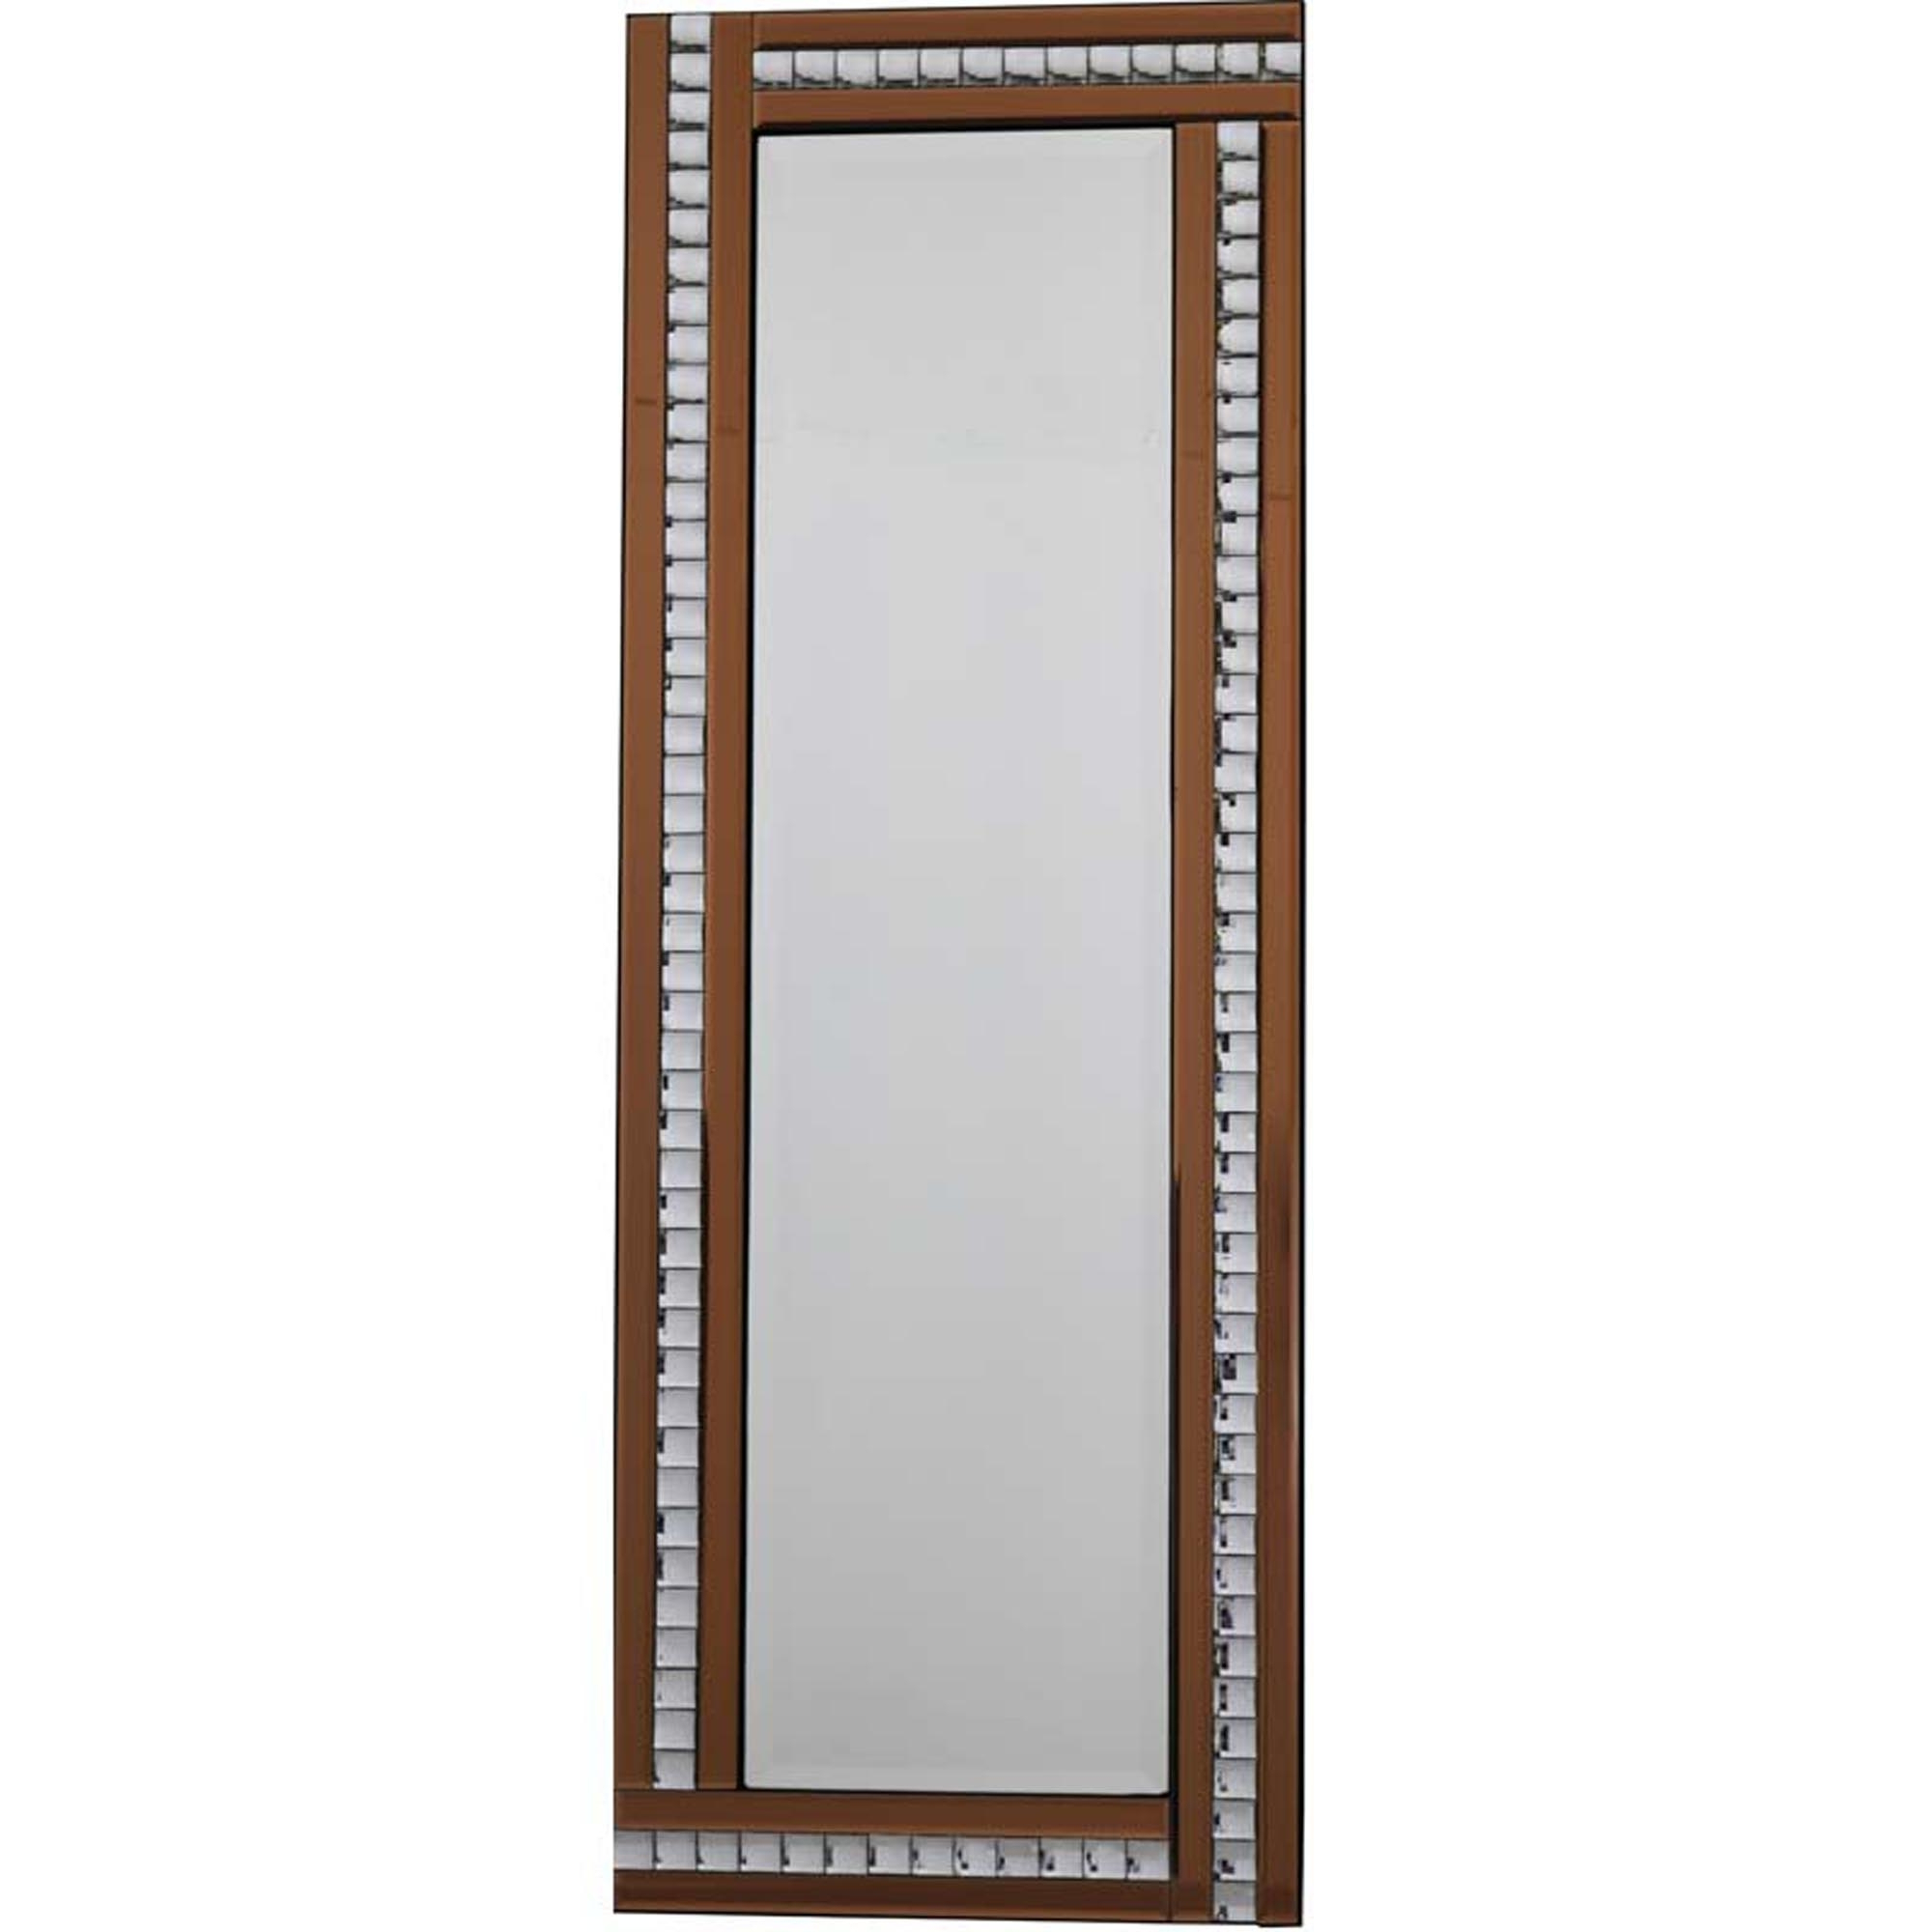 Classic Triple Bar Crystal Bronze Mirror Regarding Latest Triple Wall Mirrors (View 3 of 20)